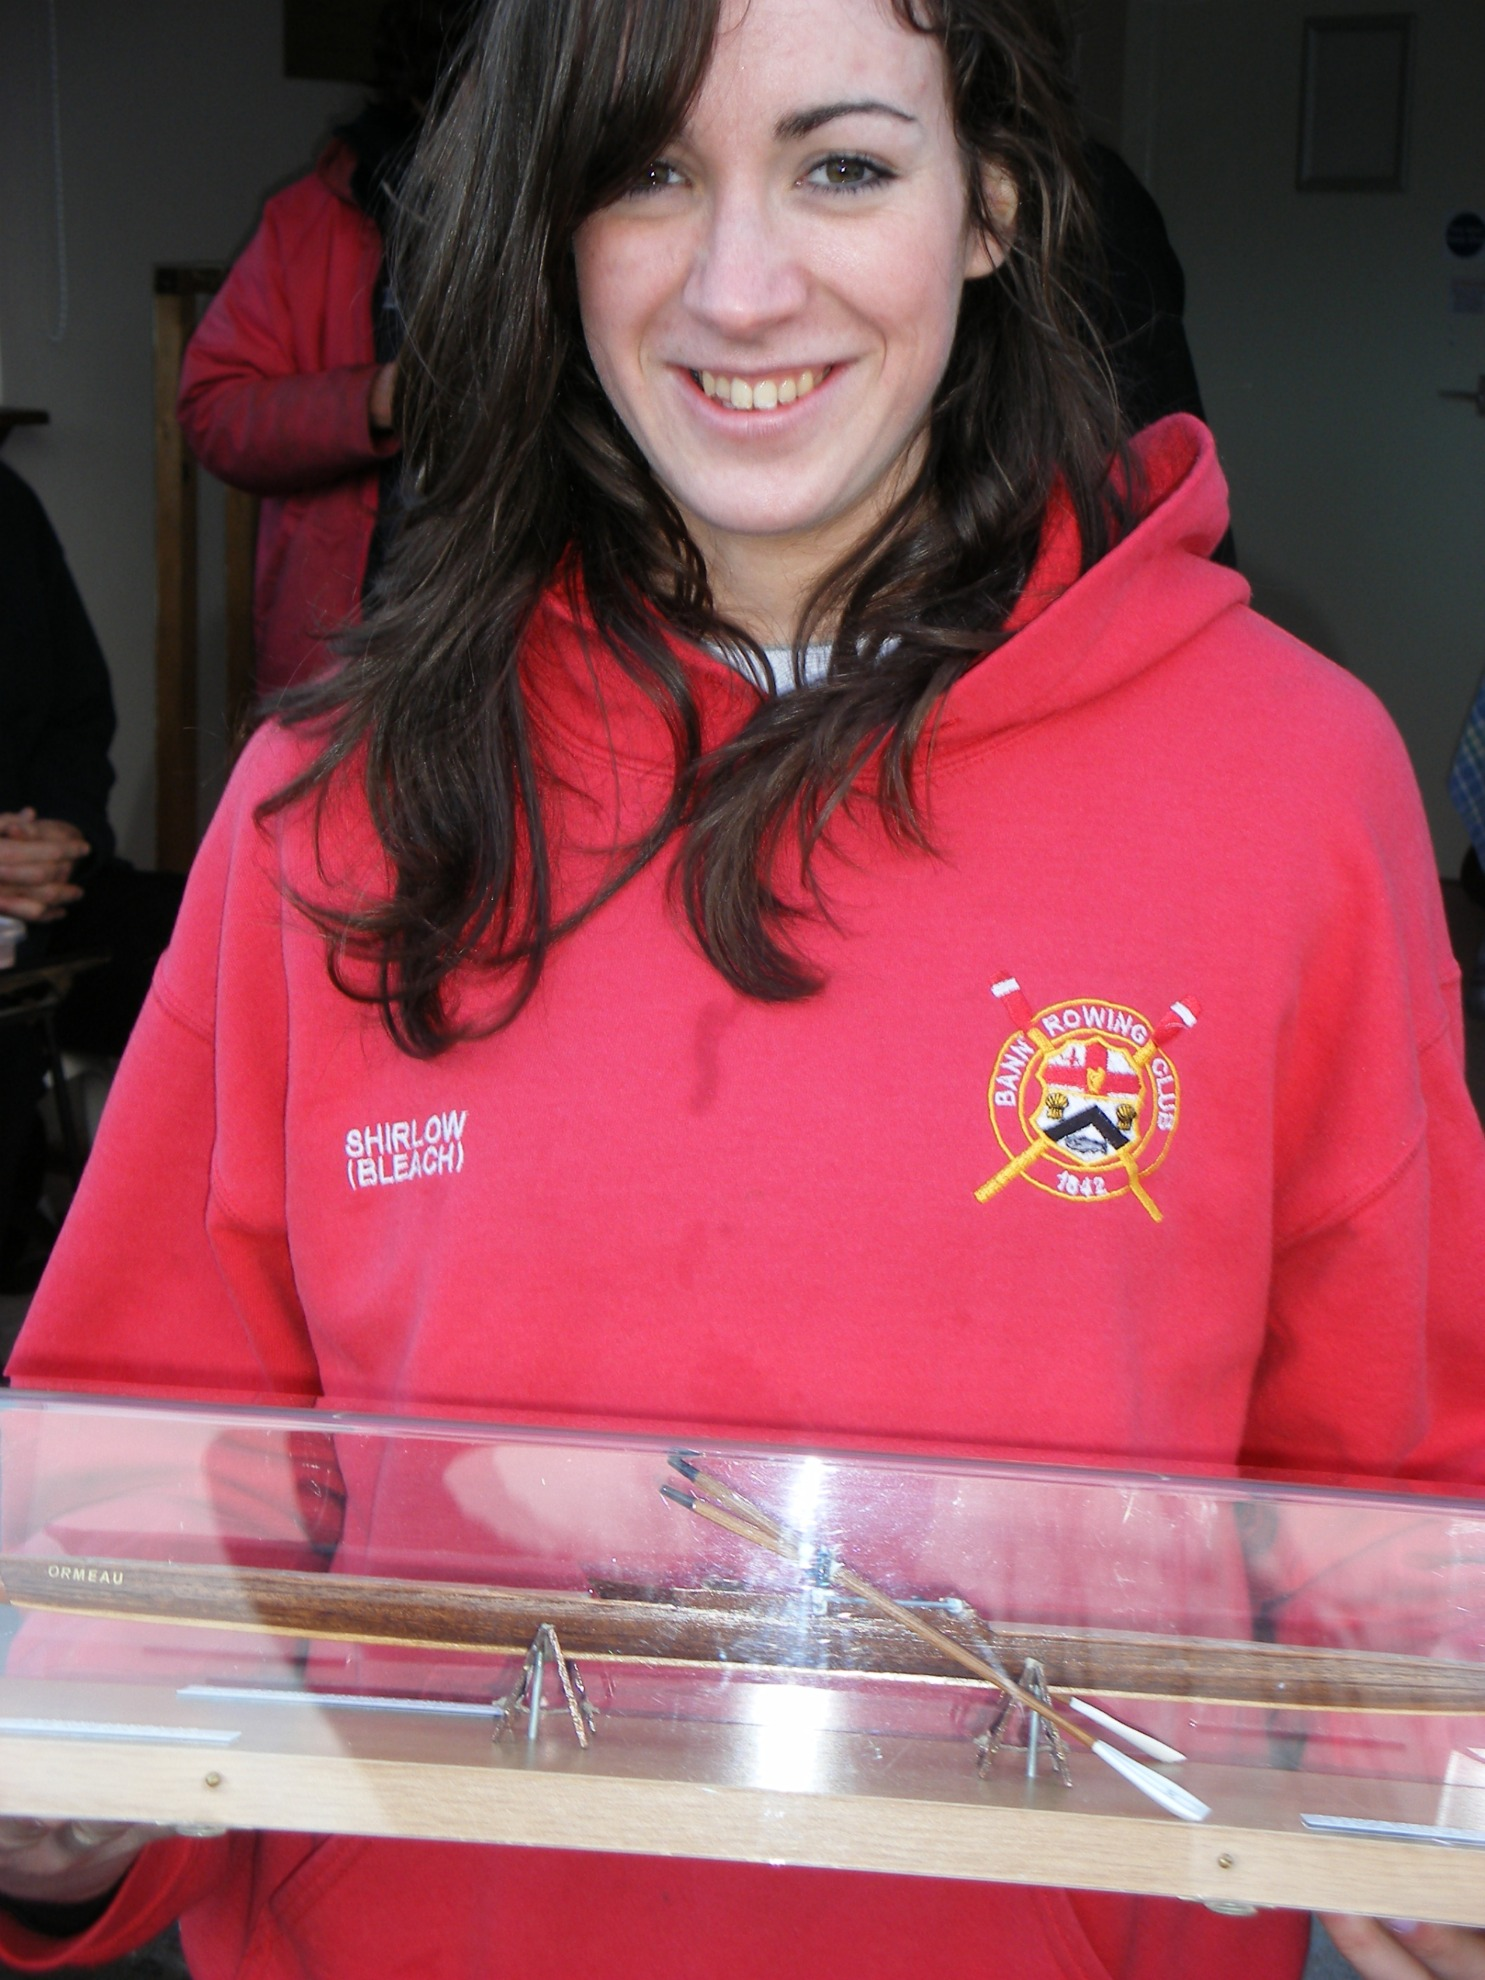 lori-fastest-girl-sculler-at-lagan-scullers-2011